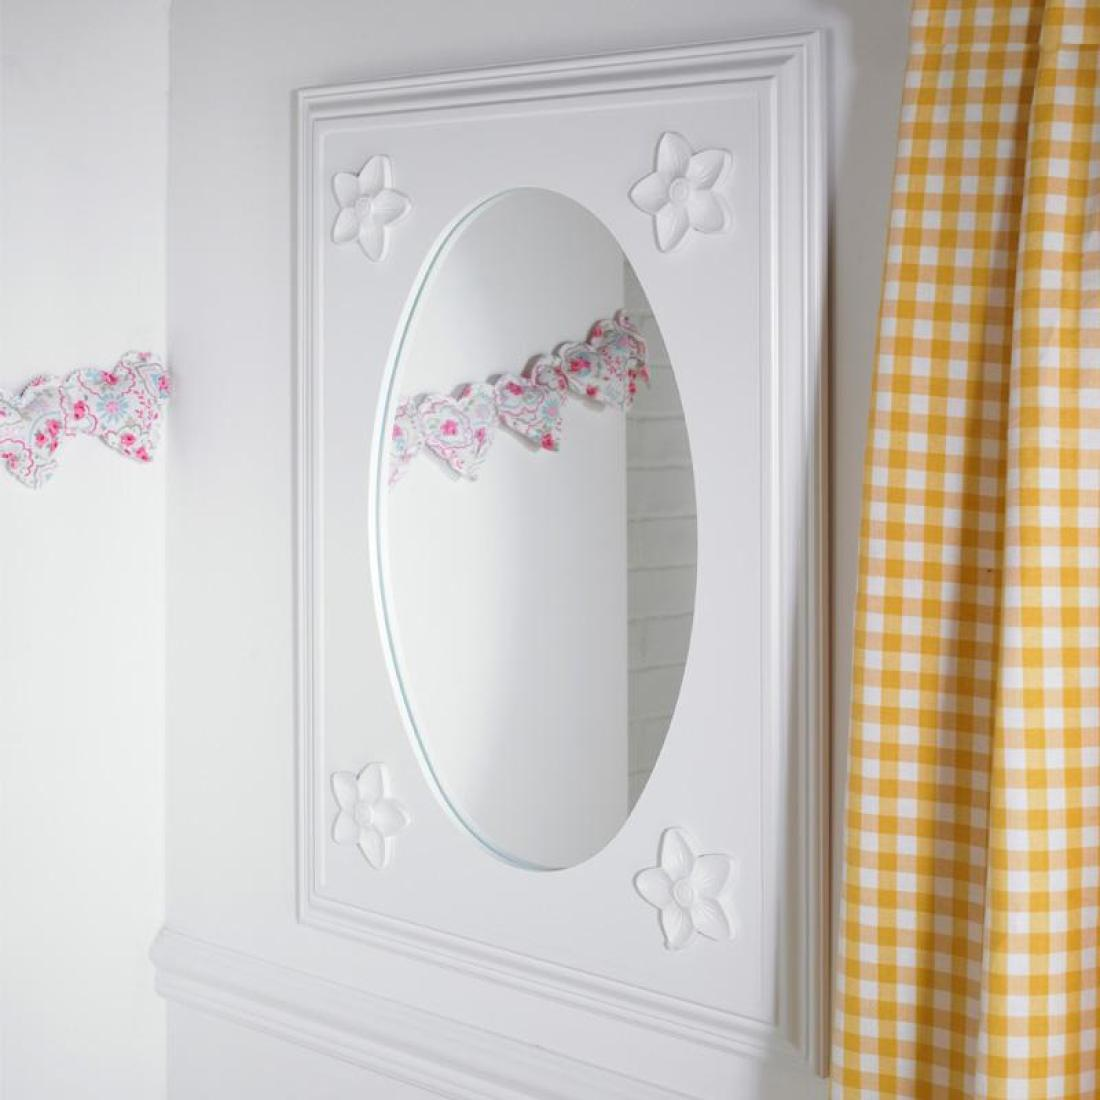 Daisy childrens wall mirror childrens mirror kids bedroom daisy childrens wall mirror amipublicfo Image collections